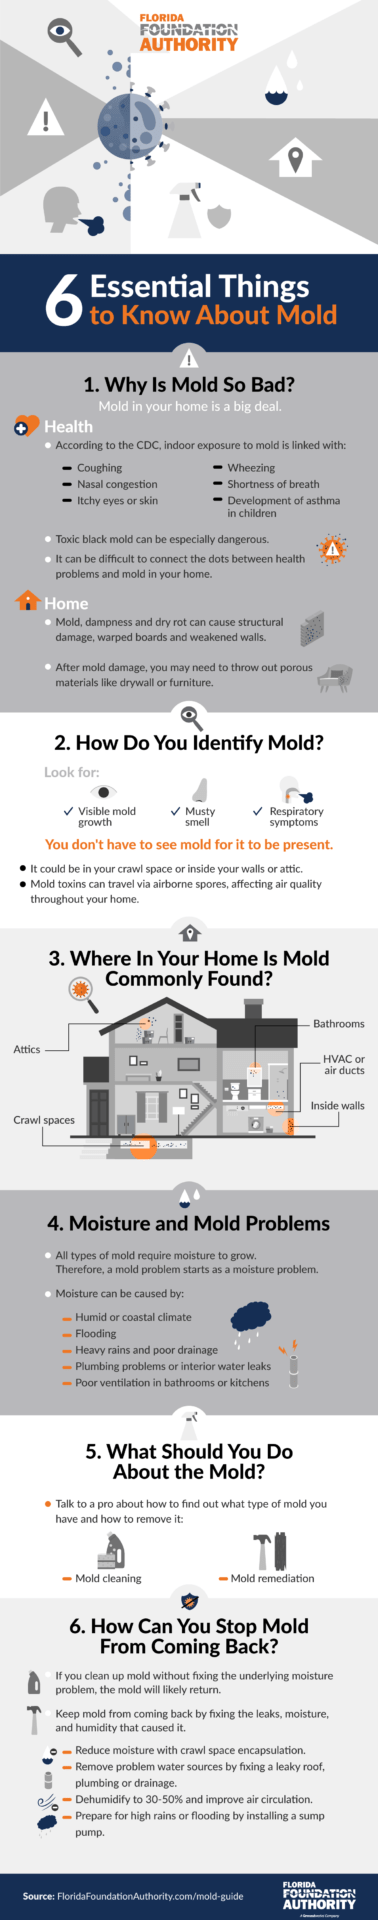 Mold Guide